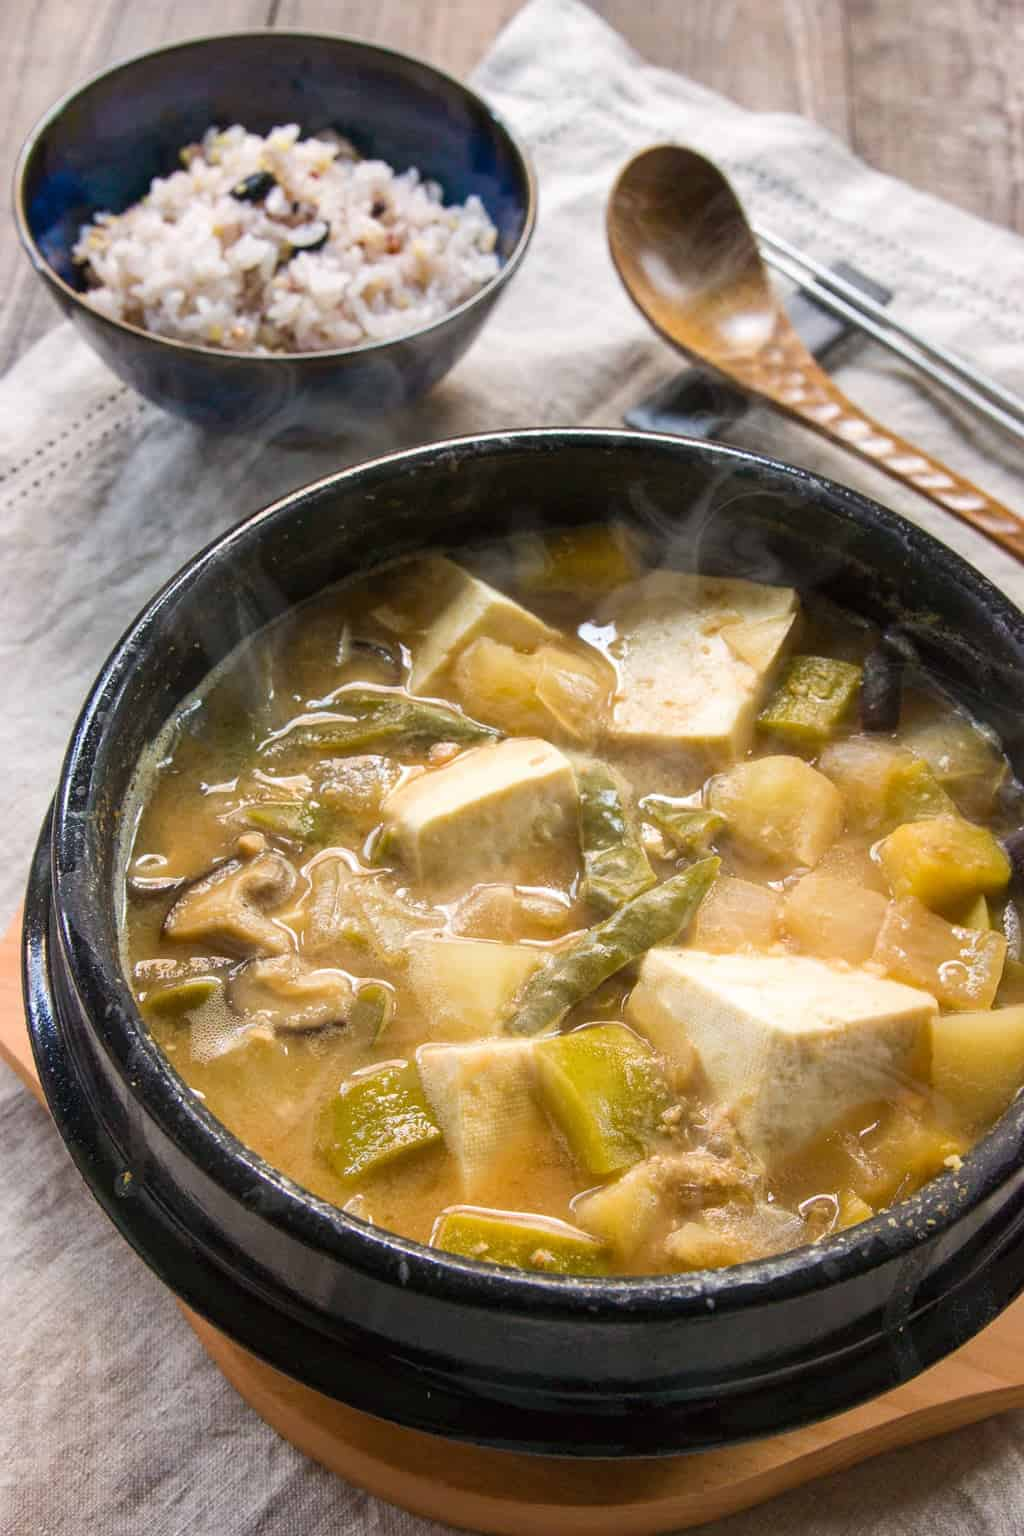 Doenjang Jjigae, is a hearty Korean stew loaded with vegetables, mushrooms and garlic and redolent of garlic. Seasoned with a fermented bean paste, it has an nutty funk that gives the soup a marvelous earthy flavor.